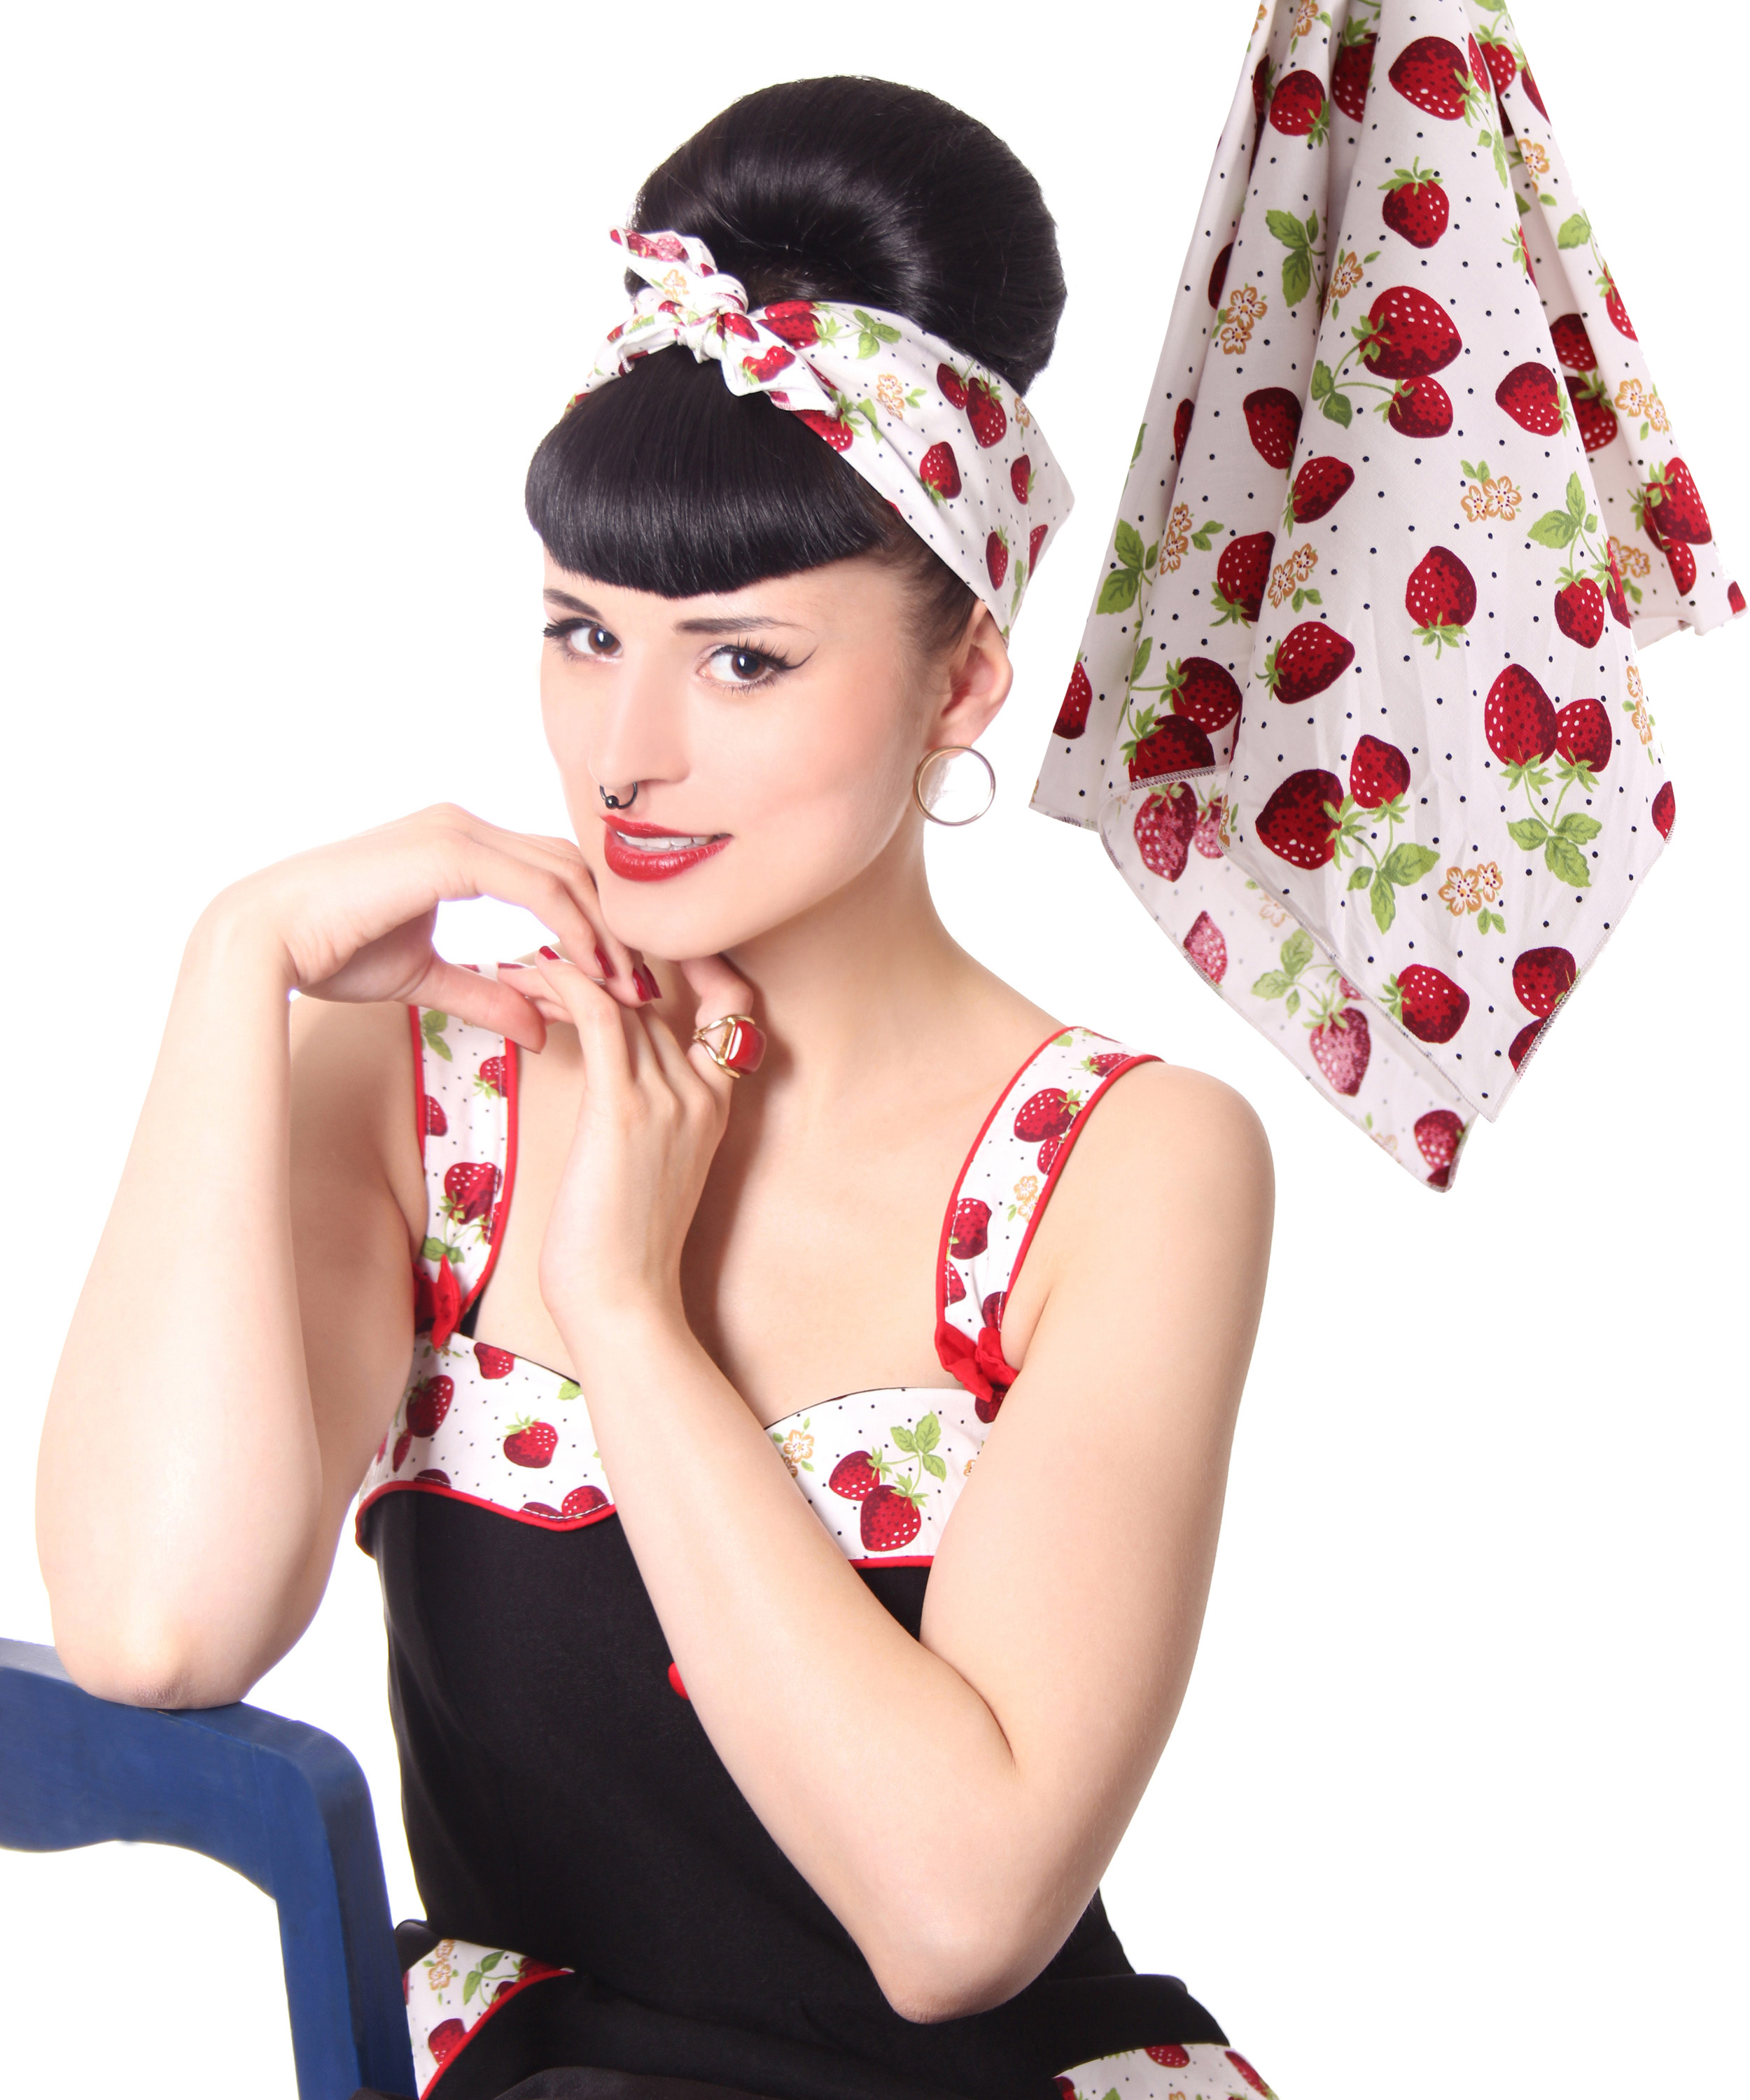 50s frisuren strawberry retro nickituch hairband haar tuch. Black Bedroom Furniture Sets. Home Design Ideas